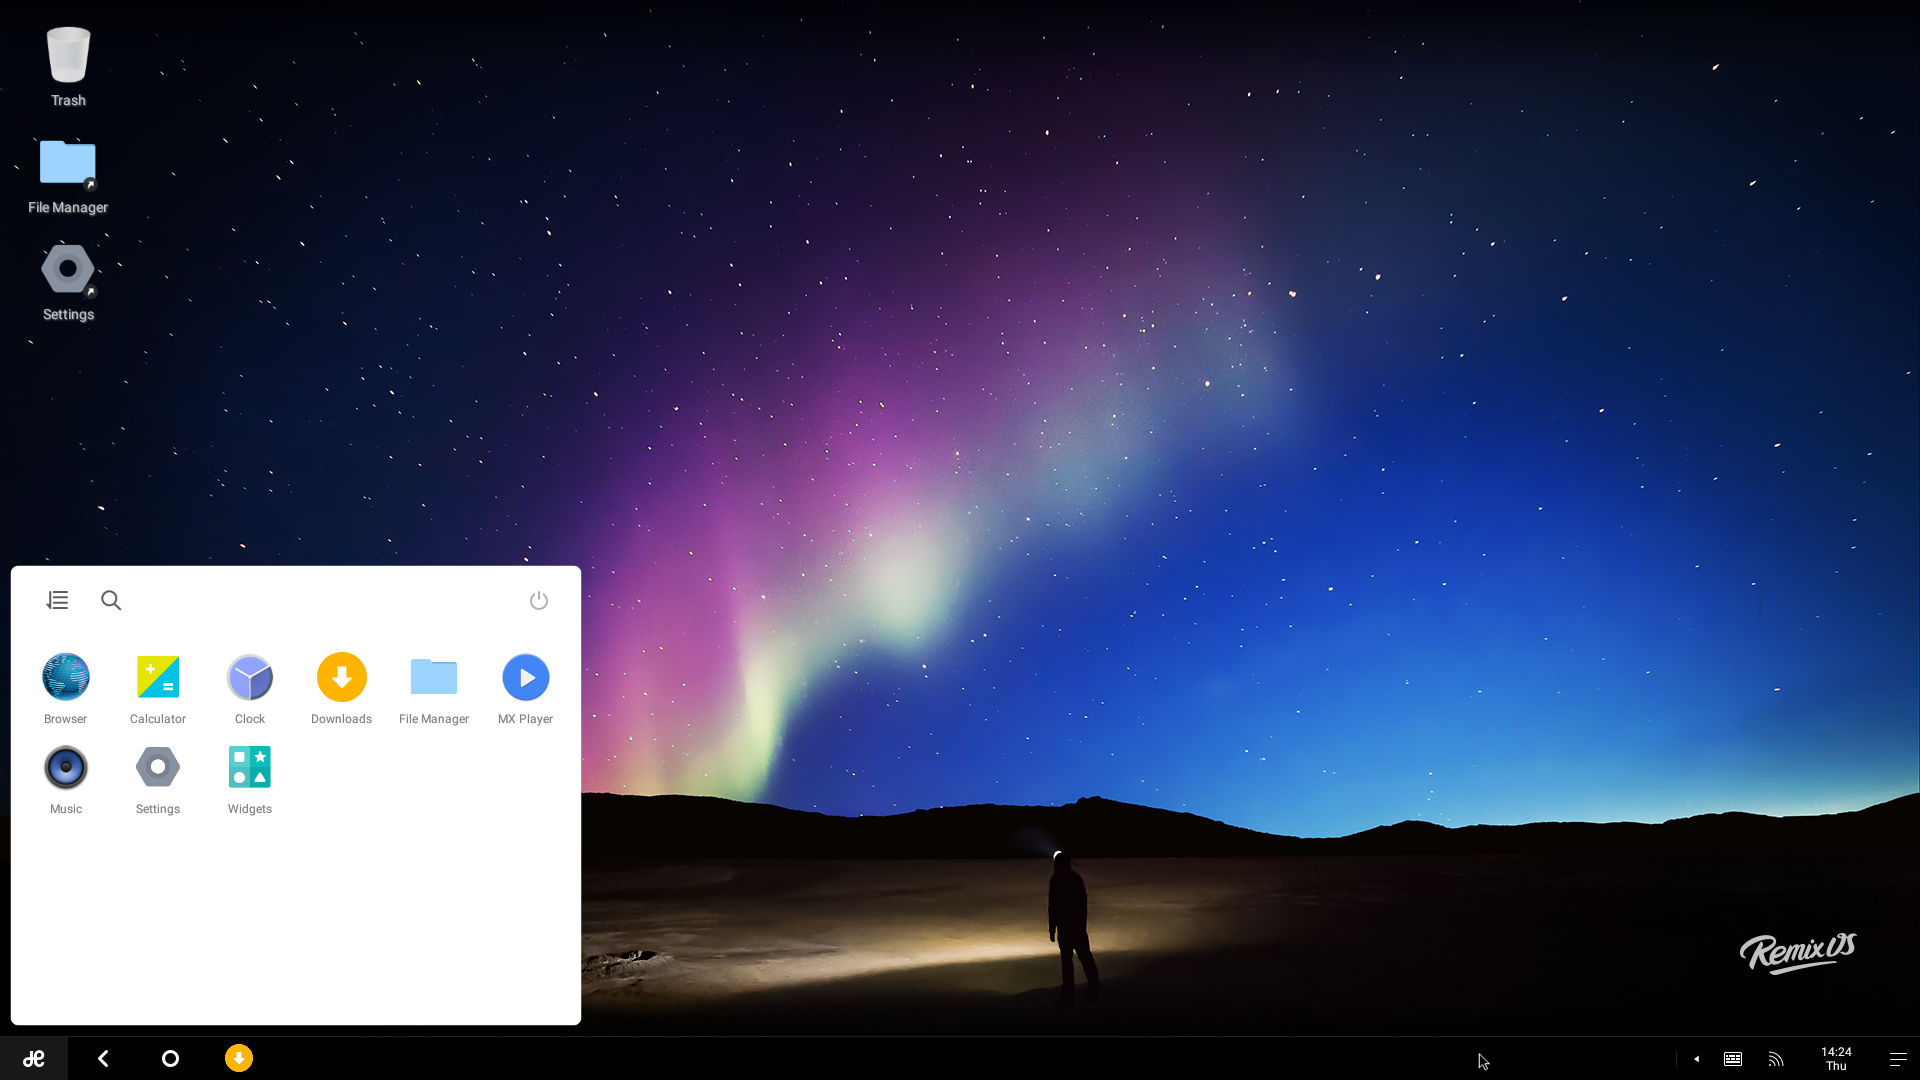 Remix Os A Peek Into The Future Of Android On The